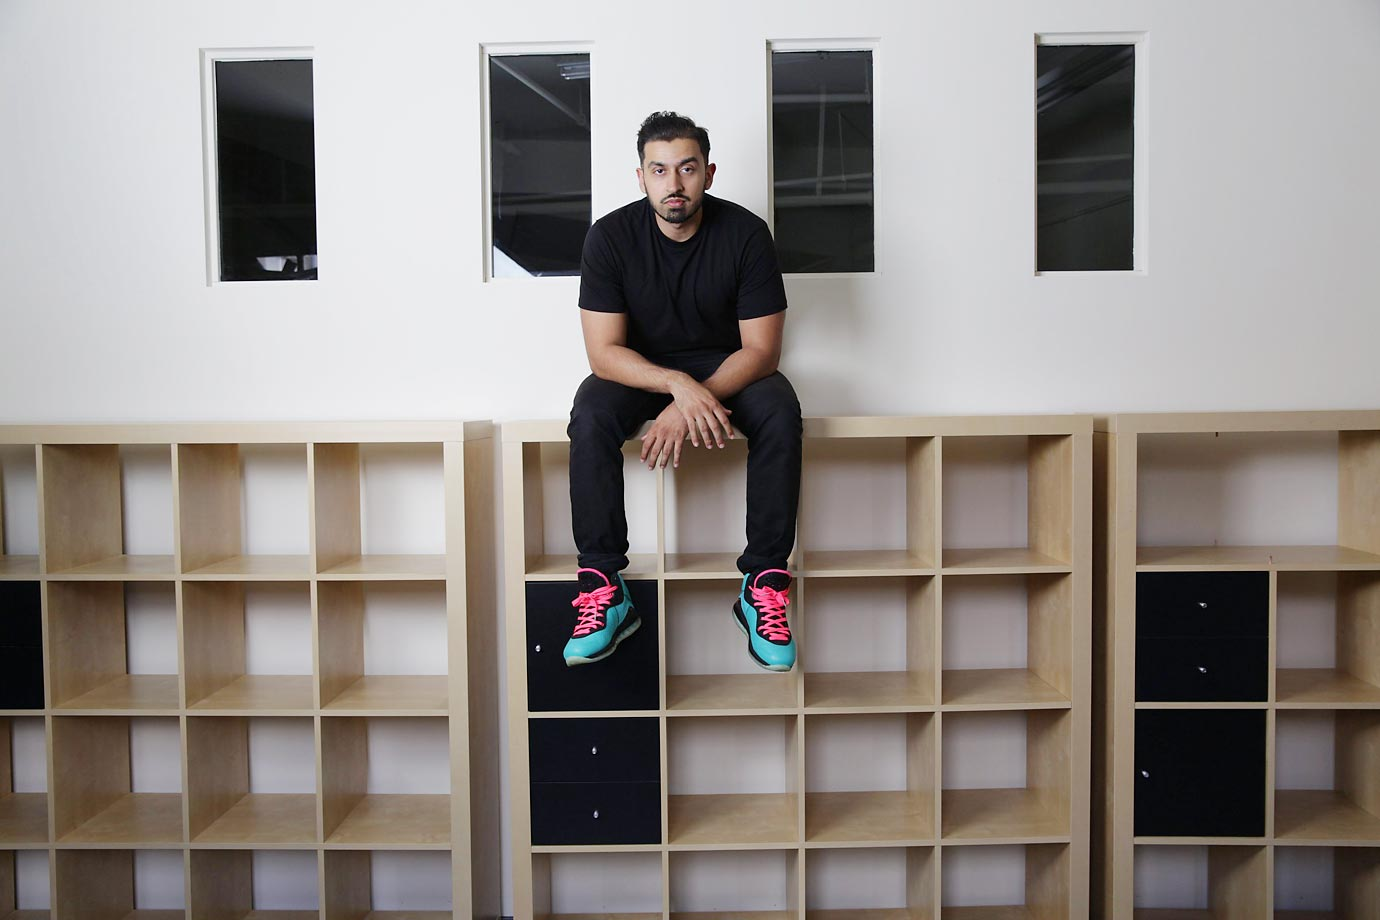 "Born in the United States but representing Pakistan, Zia Ahmad was the oldest student at the World Sneaker Championships at 33. He drove himself up to Portland from San Francisco, where he lives and works, with sneakers piled in his backseat. Having options was important. ""Footwear is the last piece of authenticity,"" he says, ""that makes your outfit legit."""